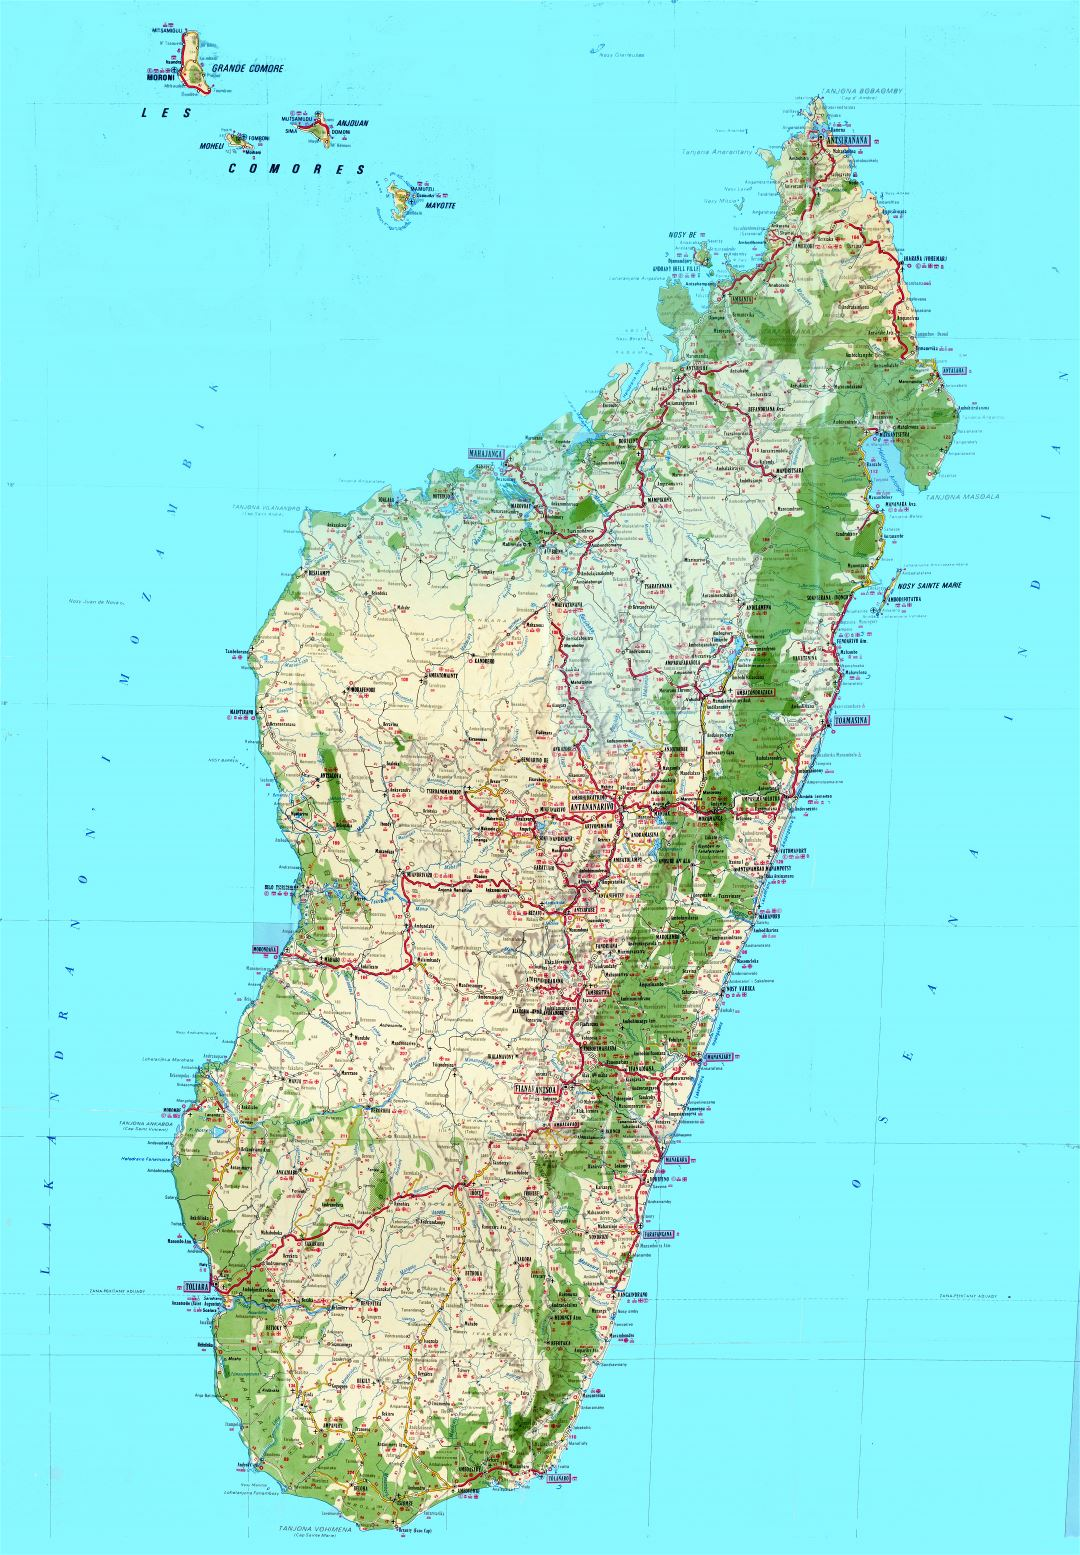 Large scale detailed topographic and tourist map of Madagascar with all roads, cities, villages, airports and other marks